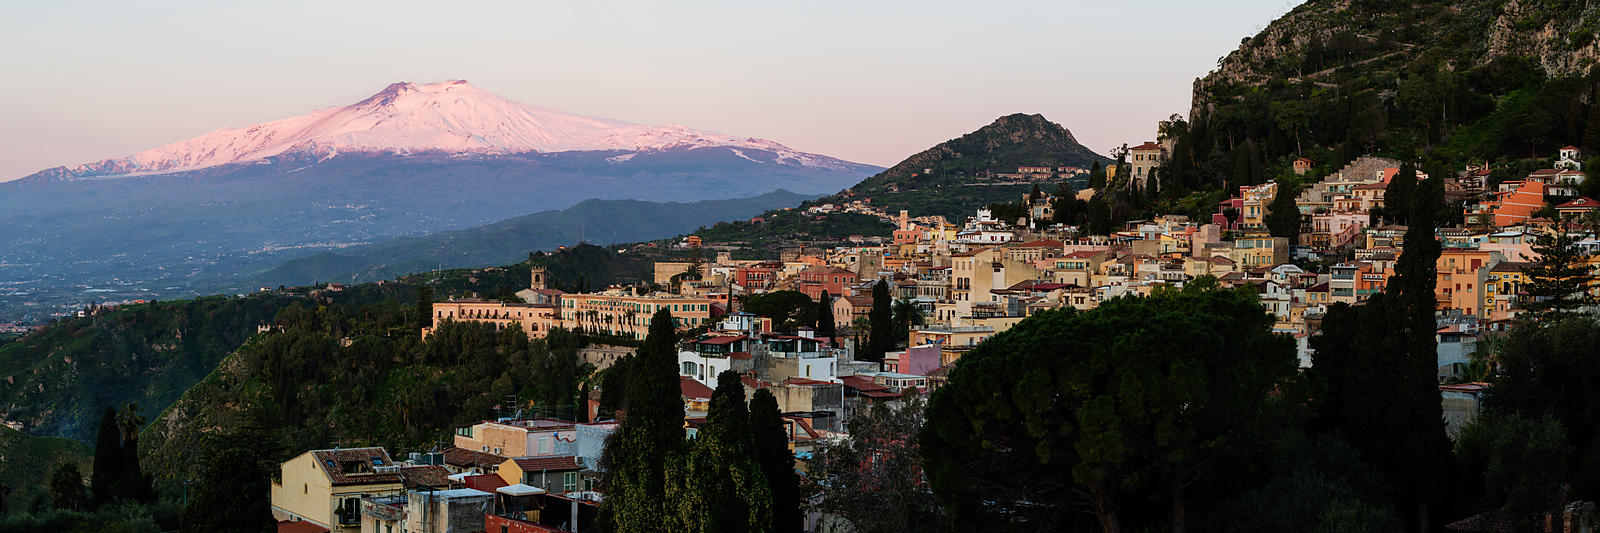 View of Mt Etna Looming up Behind the City of Taormina